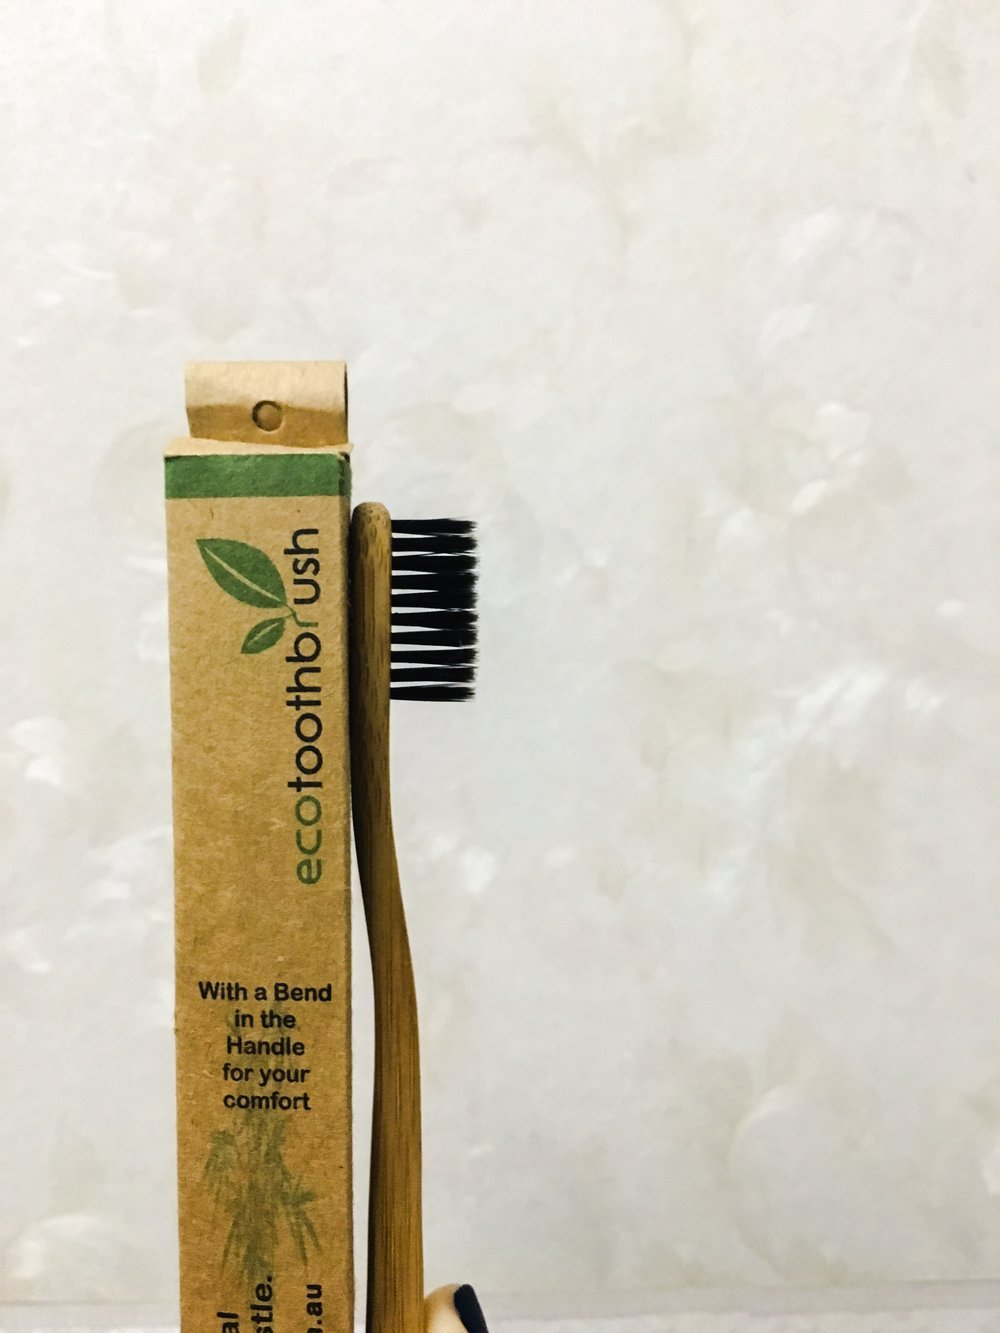 Toothbrushes made out of bamboo, enhanced with charcoal